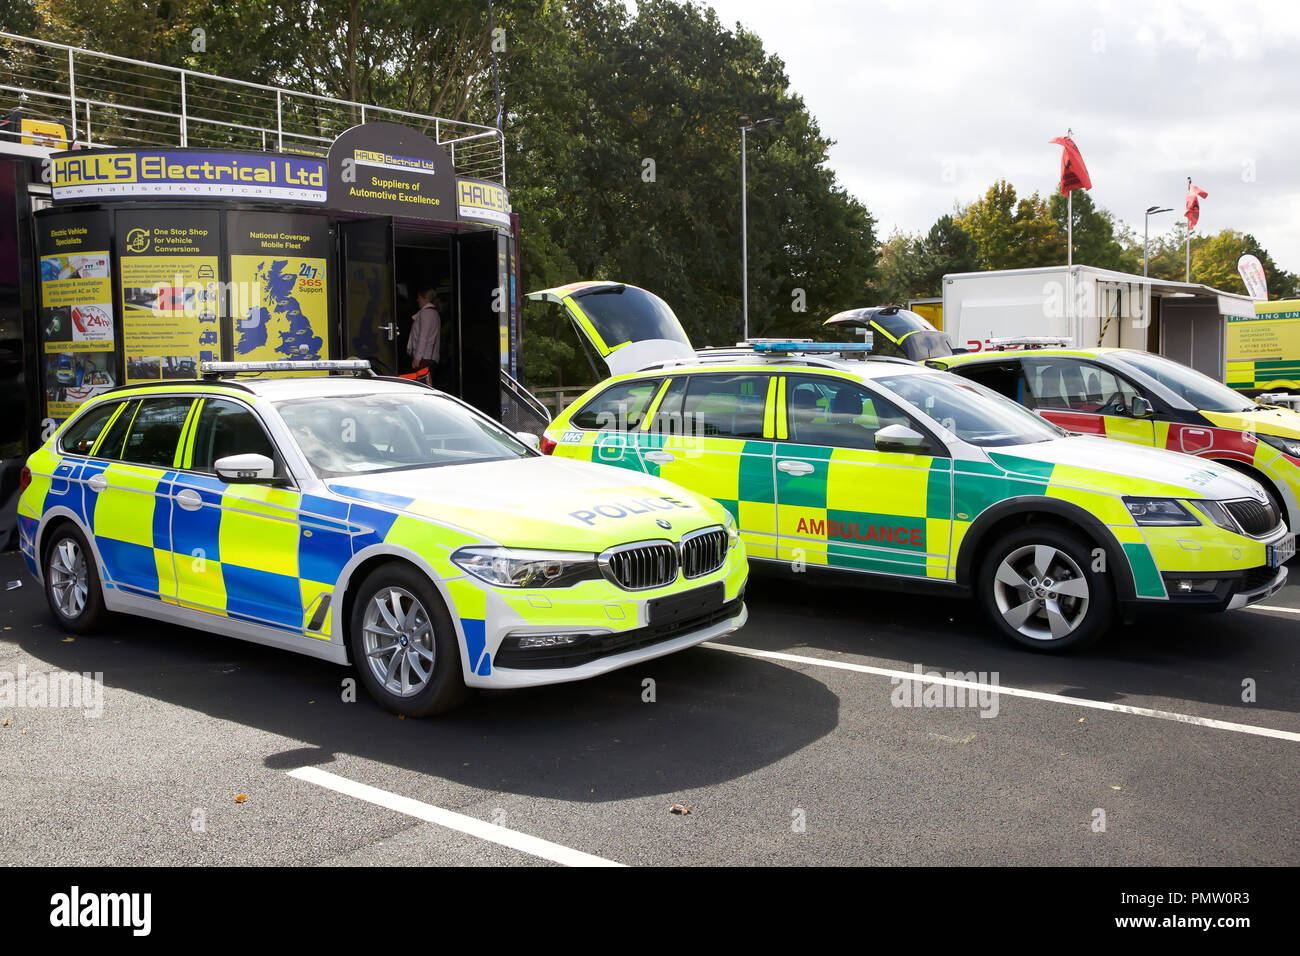 Birmingham,UK,19th September 2018,The Emergency Services Show takes place at the NEC in Birmingham. It runs for 2 days and offers ALL emergency workers a great place to network and learn with over 450 Exhibitors and many service vehicles on display inside and outdoors. There are also many free seminars covering different subjects, all in all a interesting and educational day out. Credit: Keith Larby/Alamy Live News Stock Photo